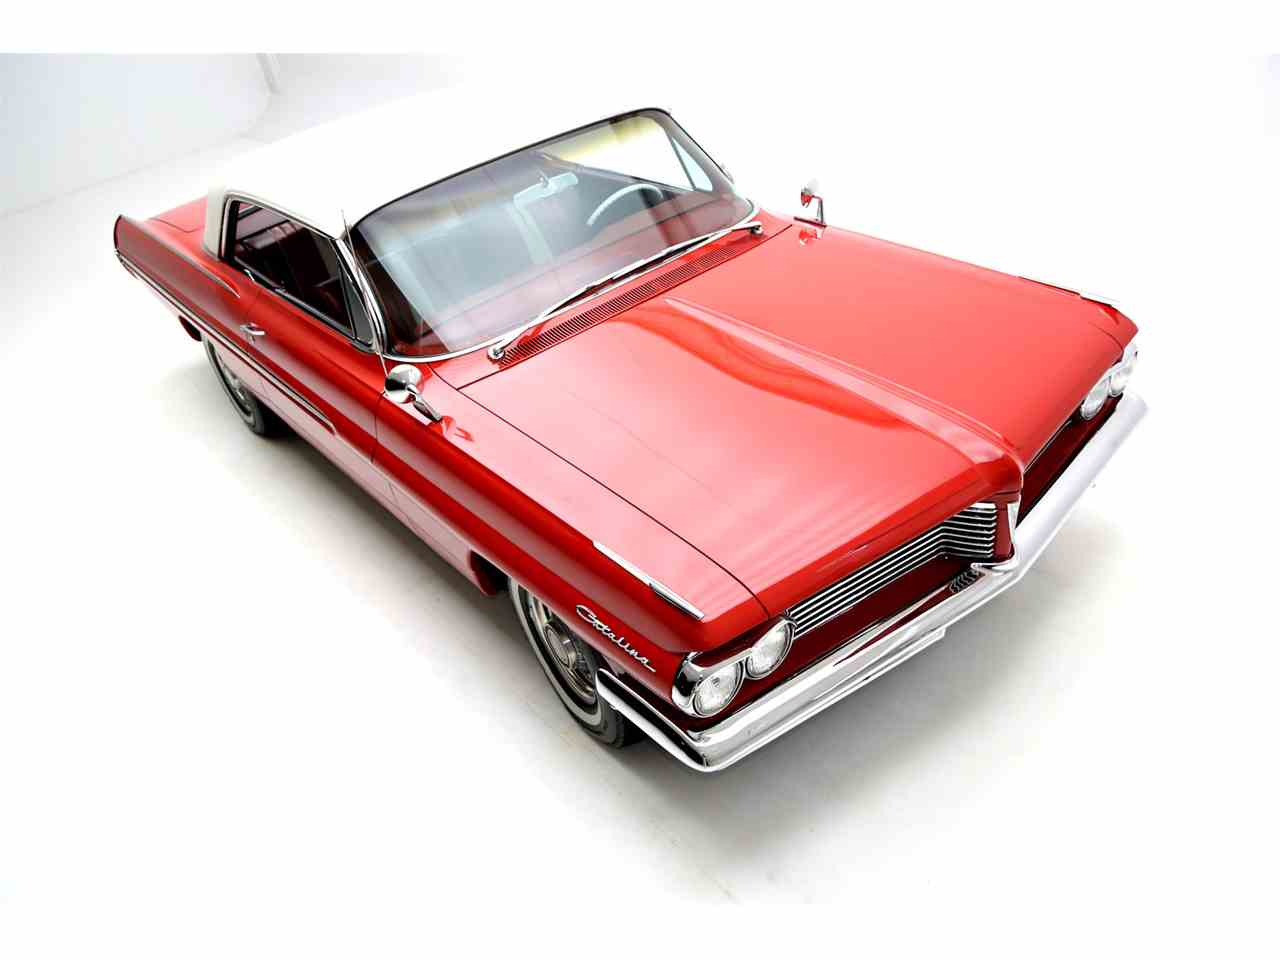 Large Picture of Classic '62 Pontiac Catalina located in Des Moines Iowa - $29,900.00 Offered by American Dream Machines - JRF9